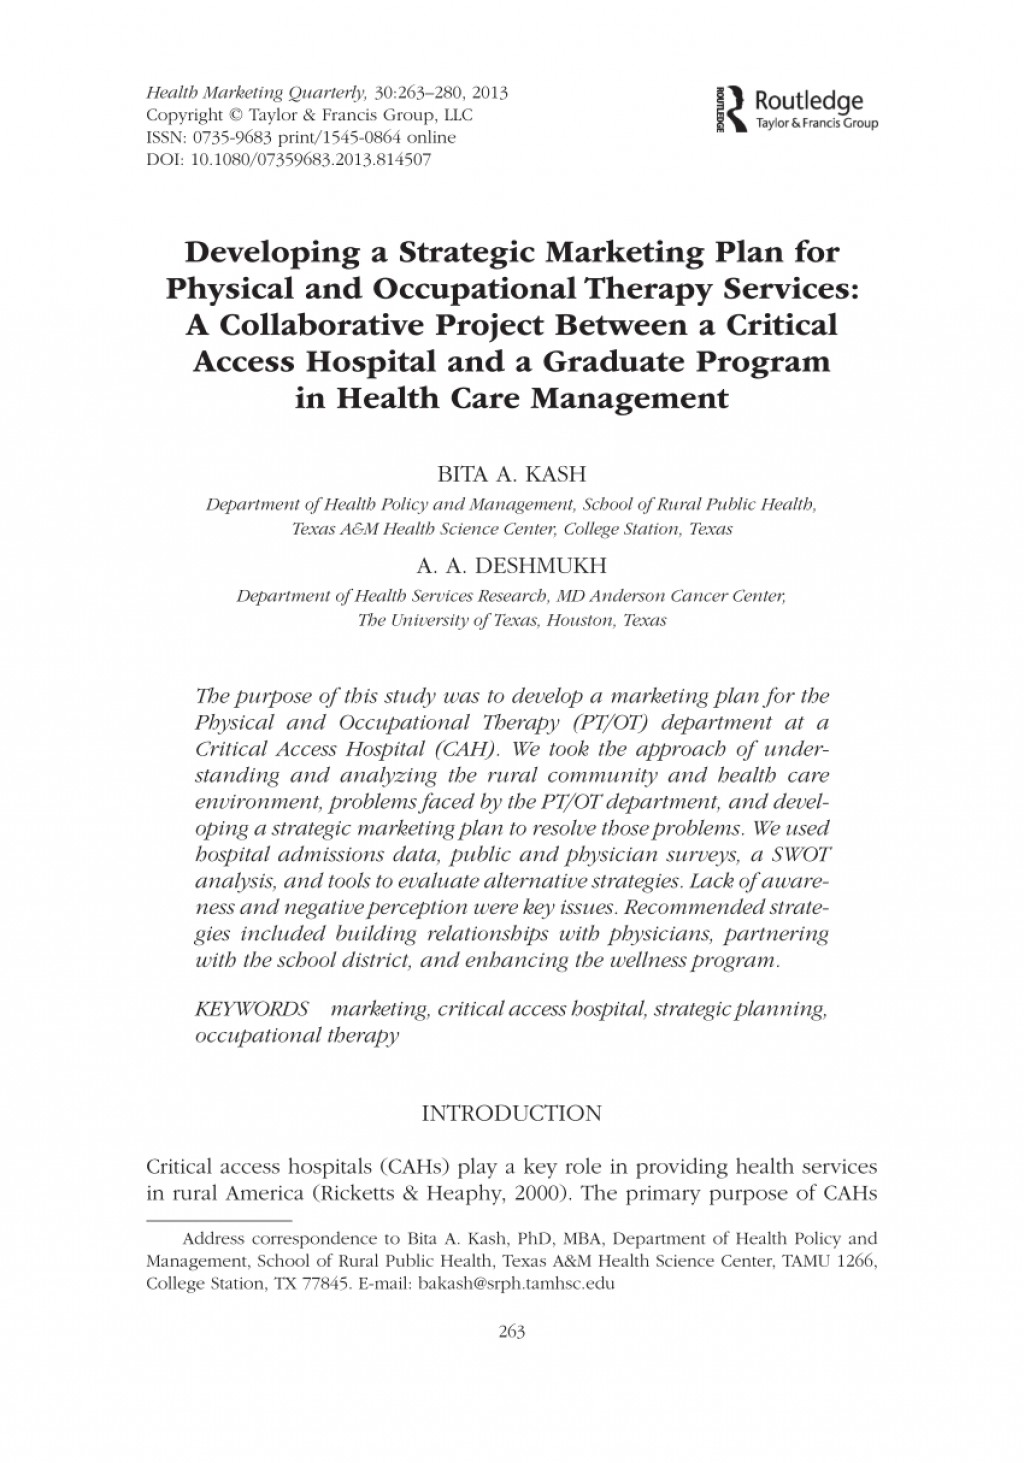 006 Research Paper On Cancer Marketing Plan Mba Image Hd Largepreview For Admission Singular Article Cells Articles Drugs Large